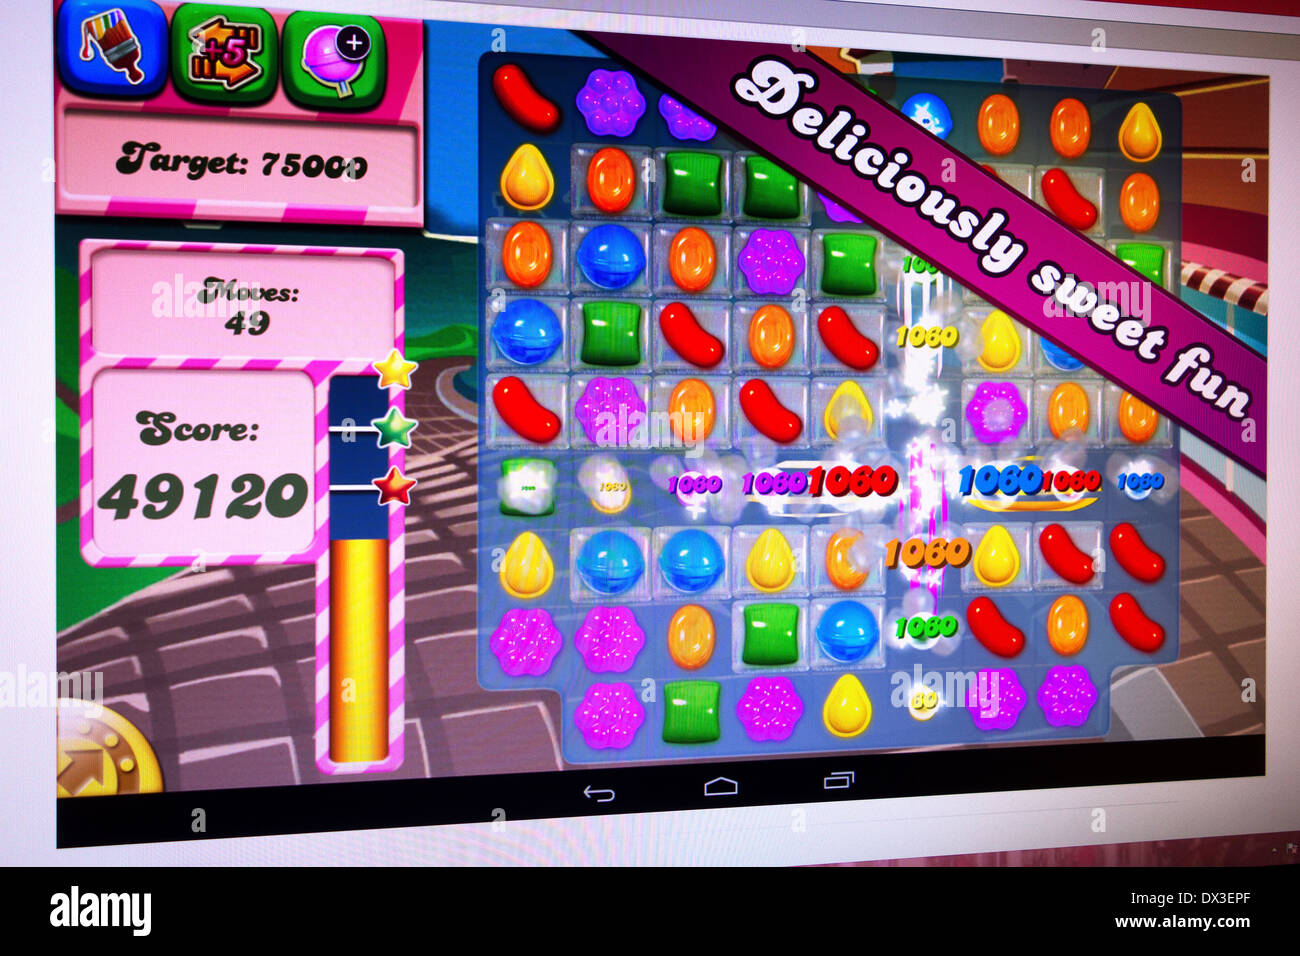 candy crush online entertainment - Stock Image